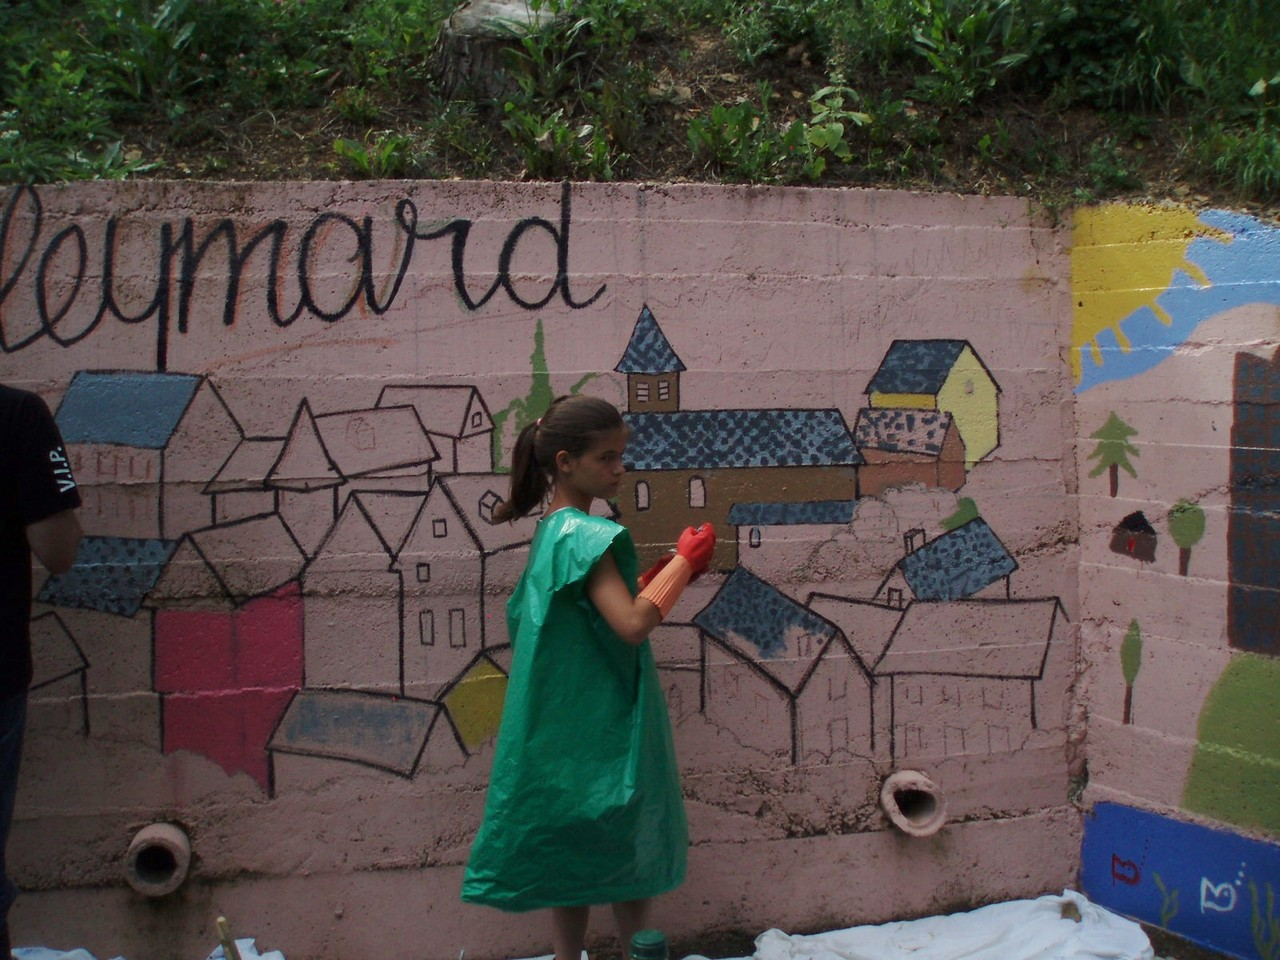 les enfants continuent à colorier la fresque.